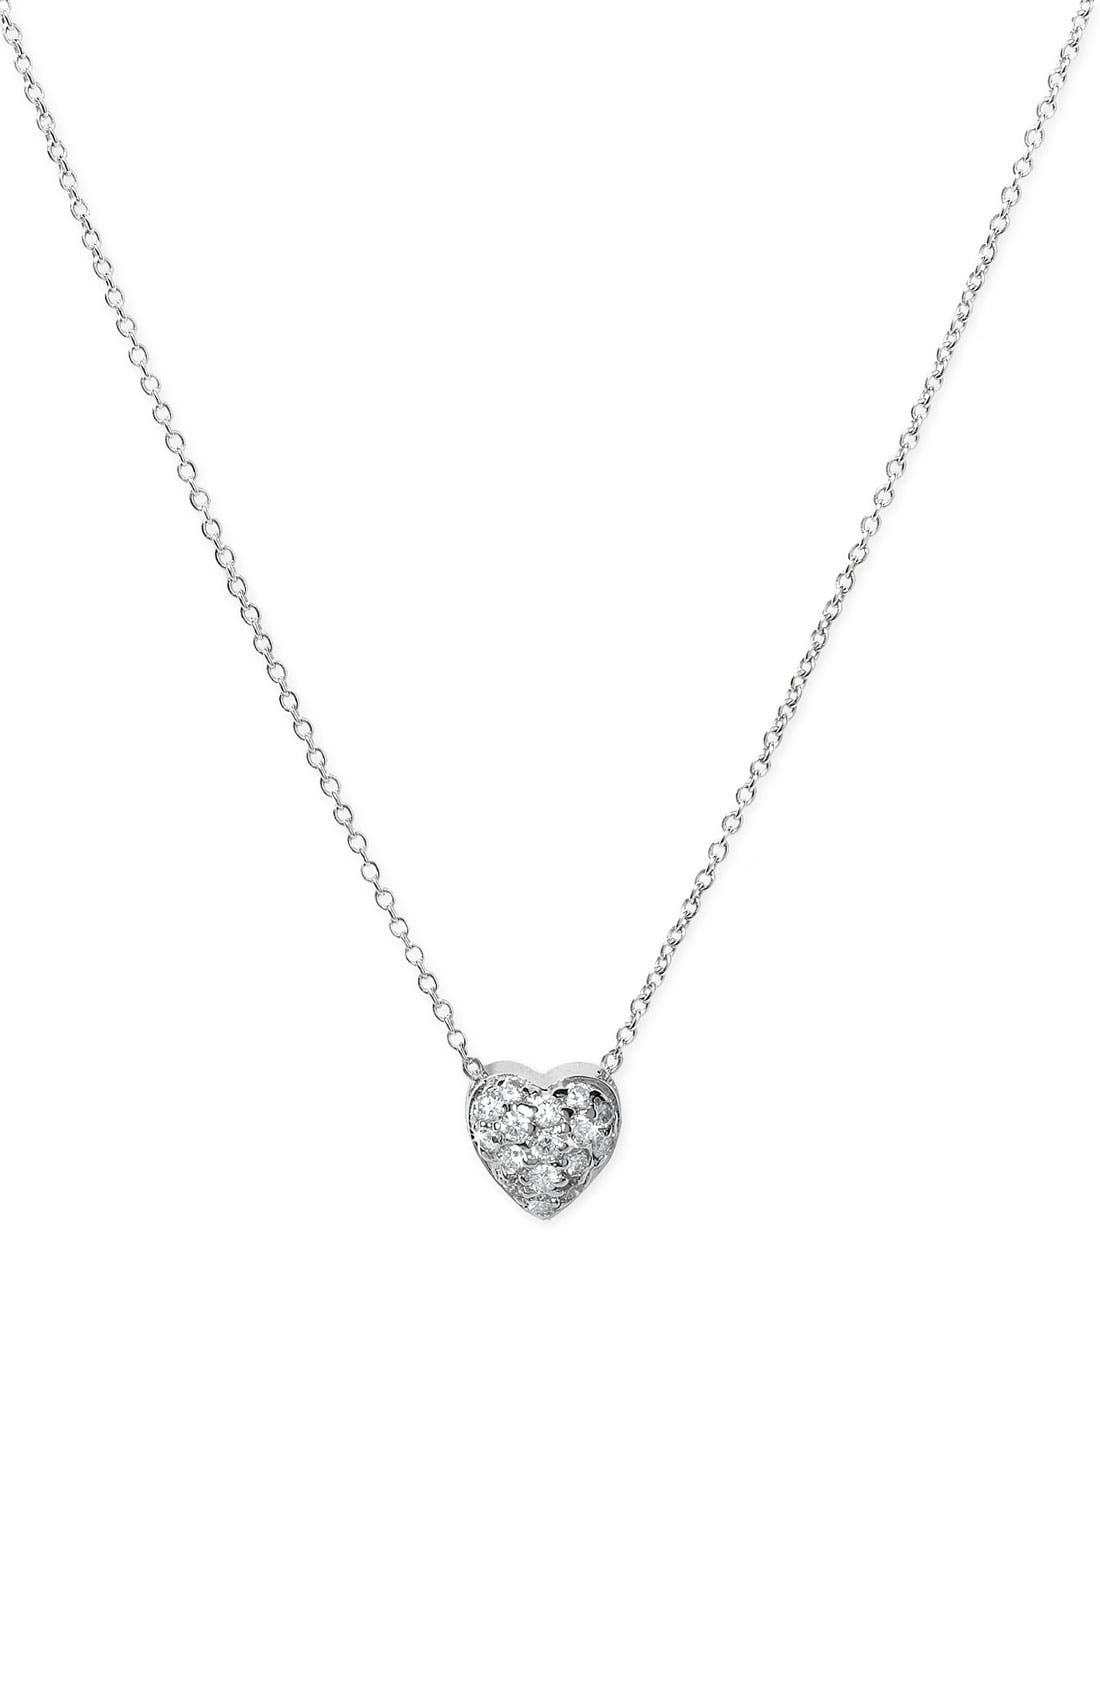 Alternate Image 1 Selected - Roberto Coin 'Tiny Treasures' Diamond Puffed Heart Pendant Necklace